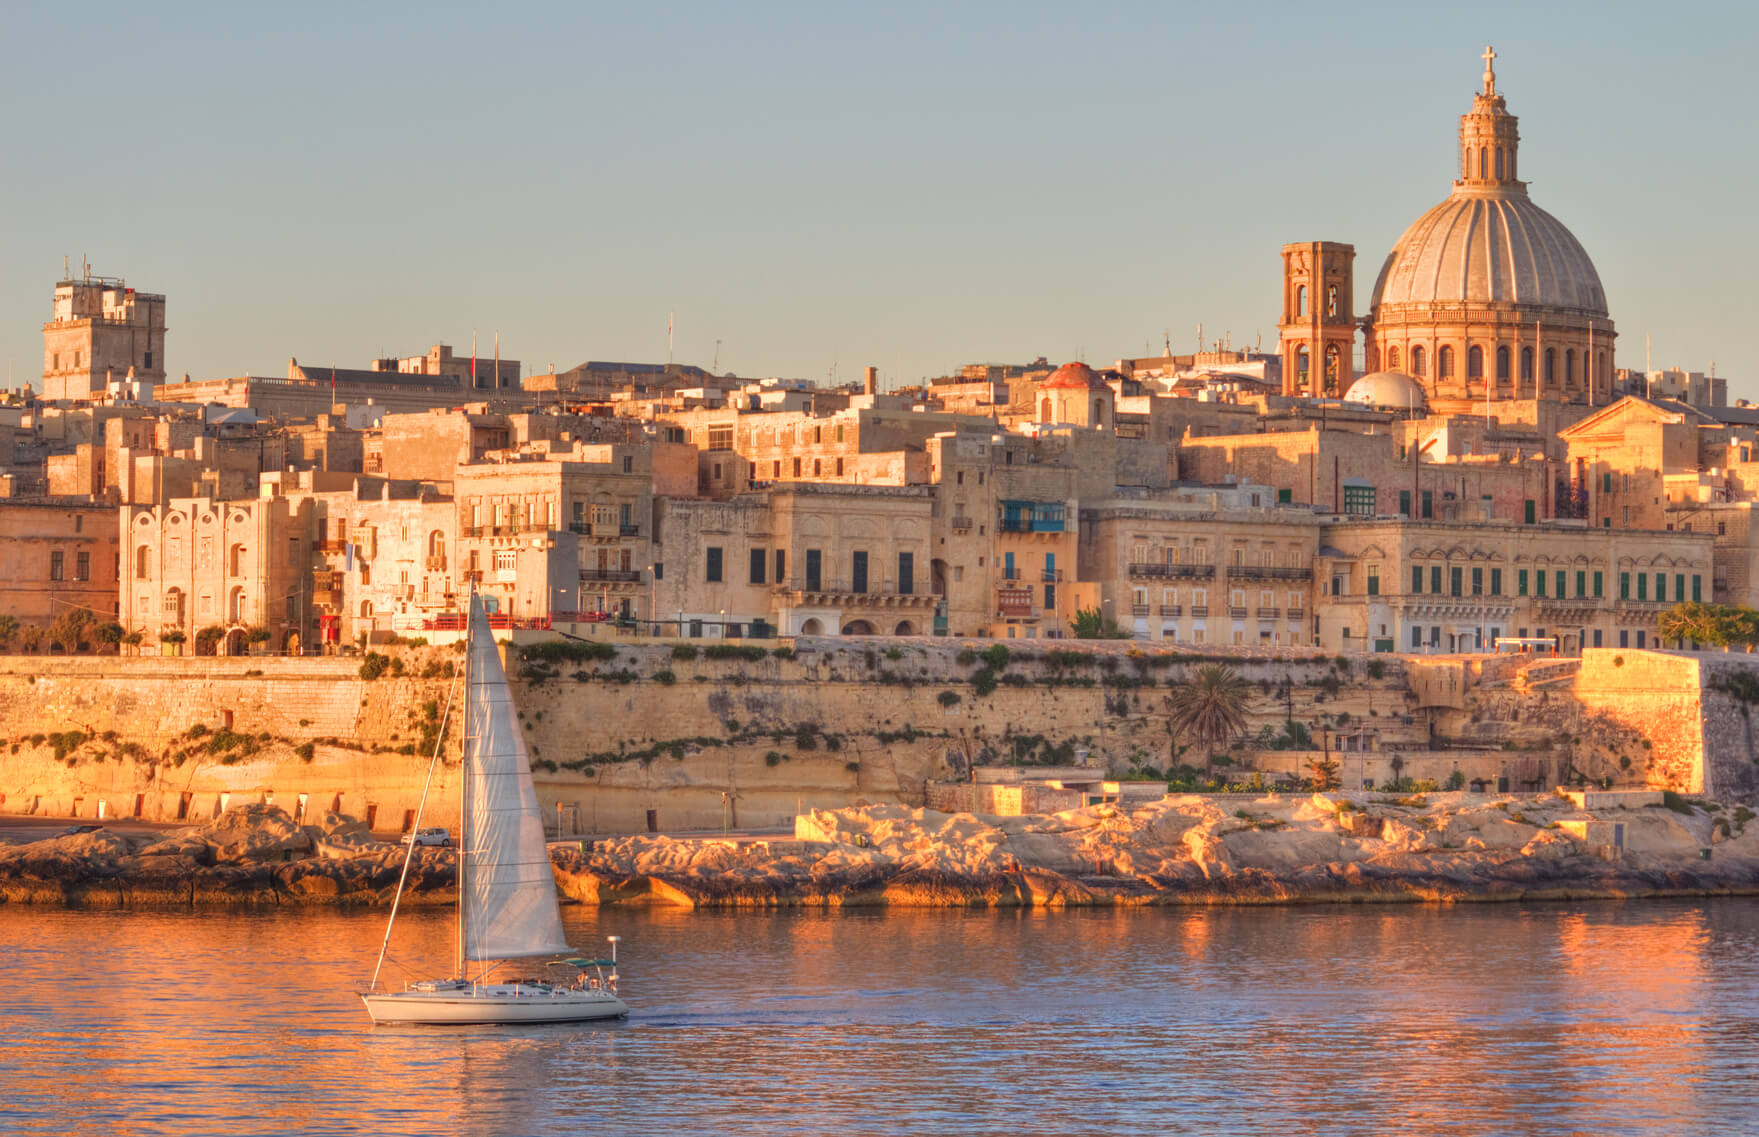 Cluj, Romania to Malta for only €16 roundtrip (Wizz members price)